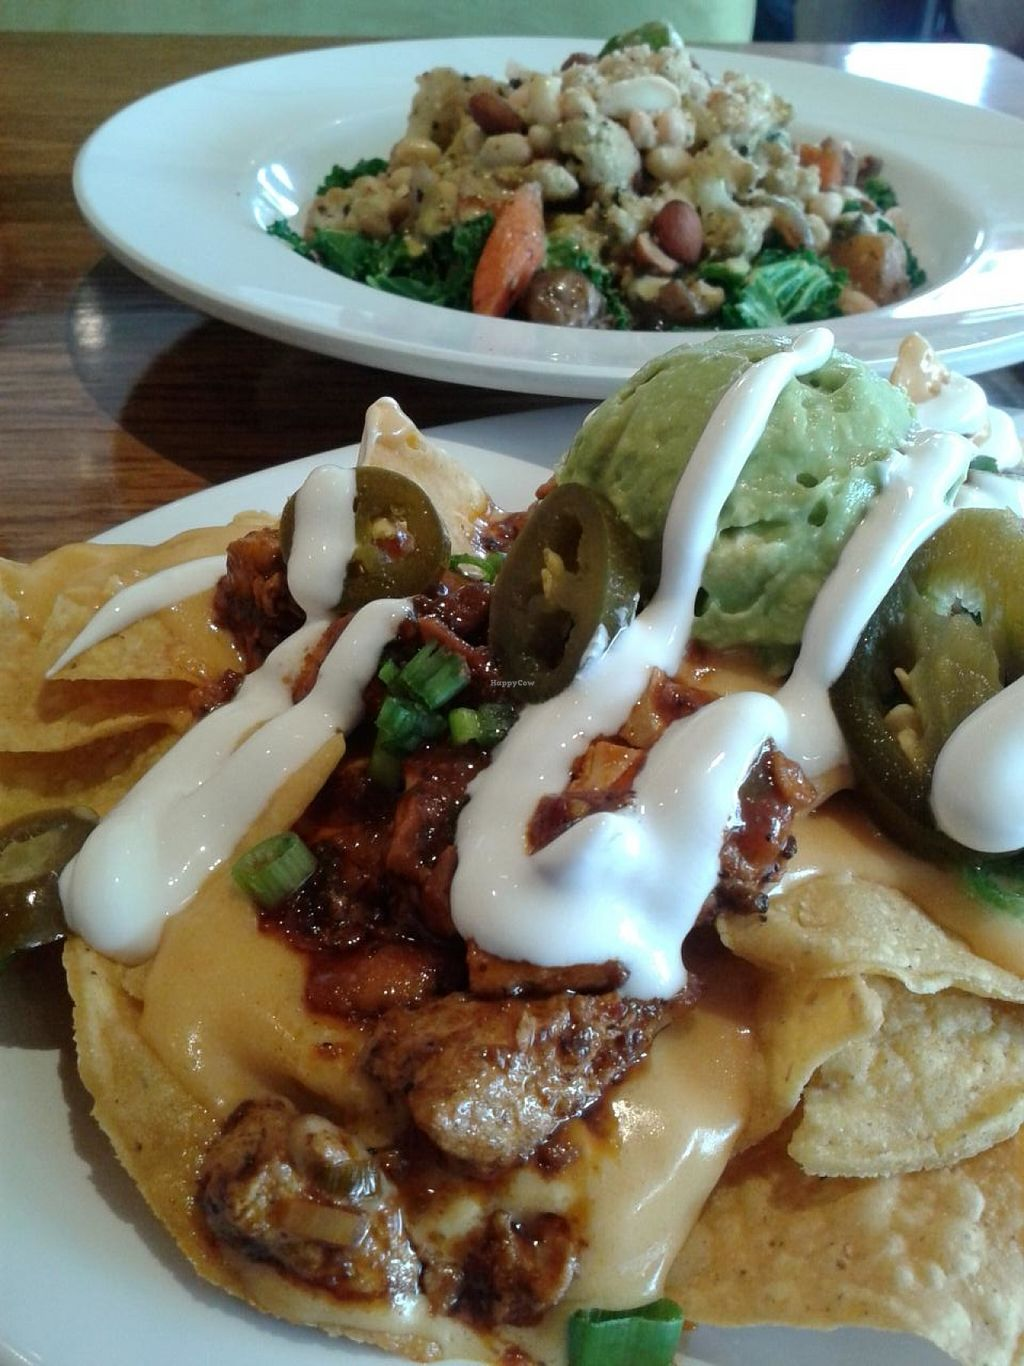 """Photo of Veggie Grill  by <a href=""""/members/profile/chobesoy"""">chobesoy</a> <br/>today's lunch: loaded nachos and Bombay curry bowl. So awesome <br/> February 22, 2014  - <a href='/contact/abuse/image/33046/186948'>Report</a>"""